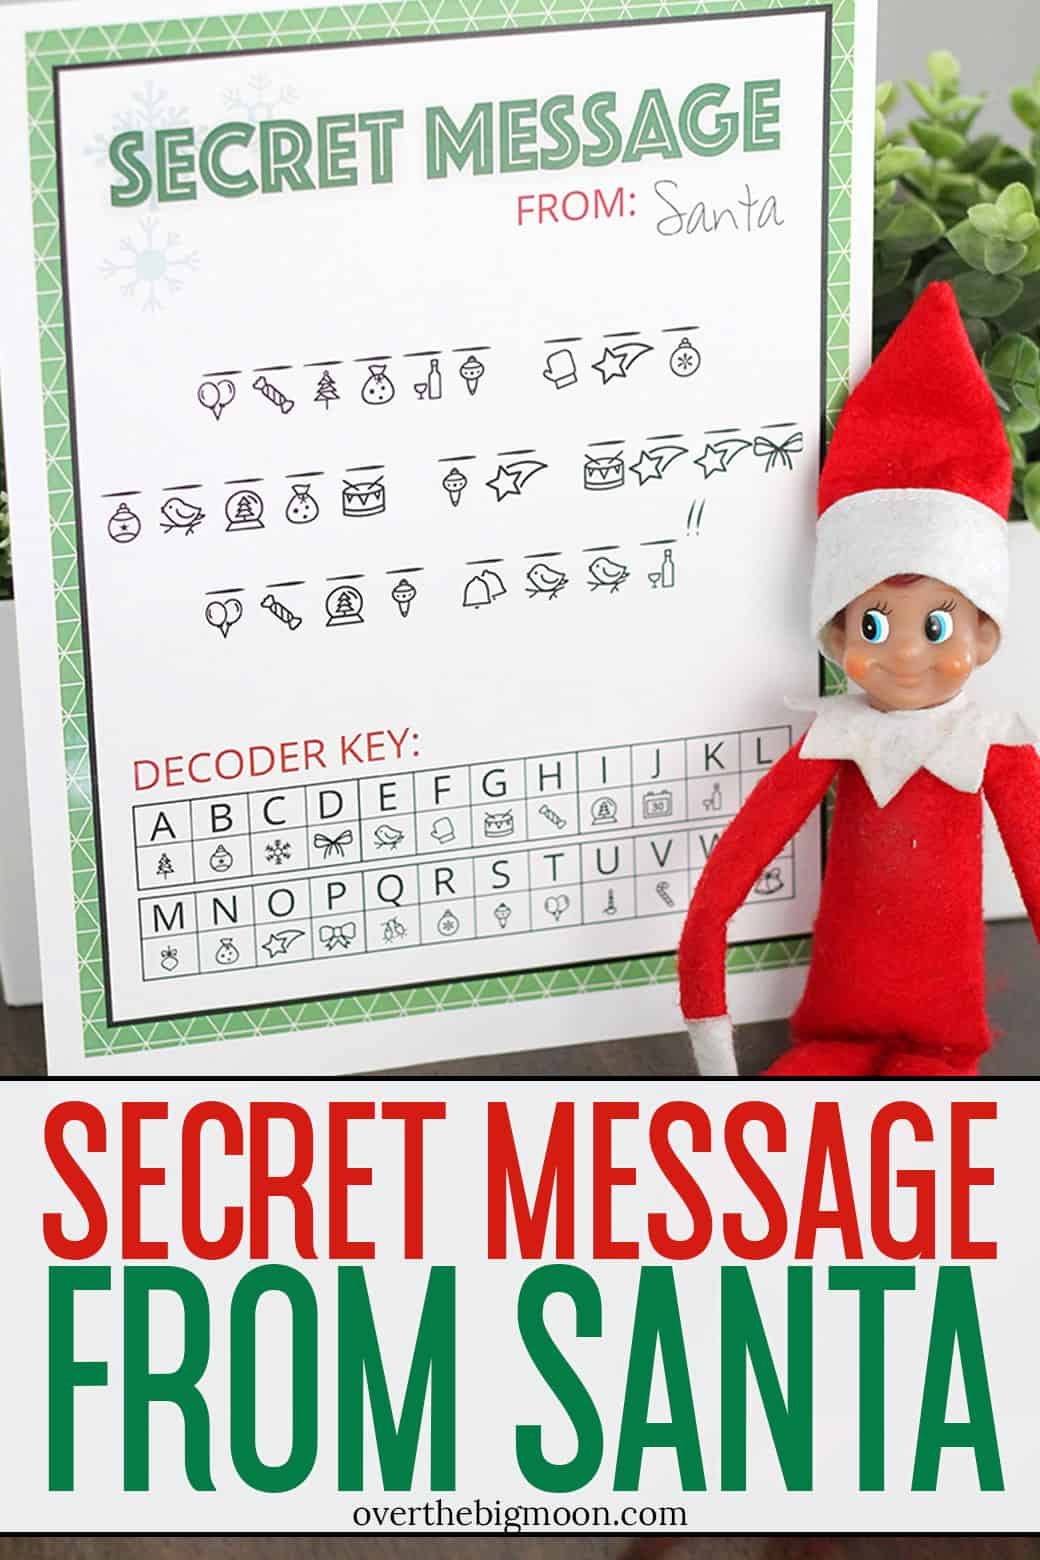 Have your Elf bring back this fun Secret Message From Santa Printable from the North Pole! They'll love decoding and getting a fun message from Santa! From overthebigmoon.com!